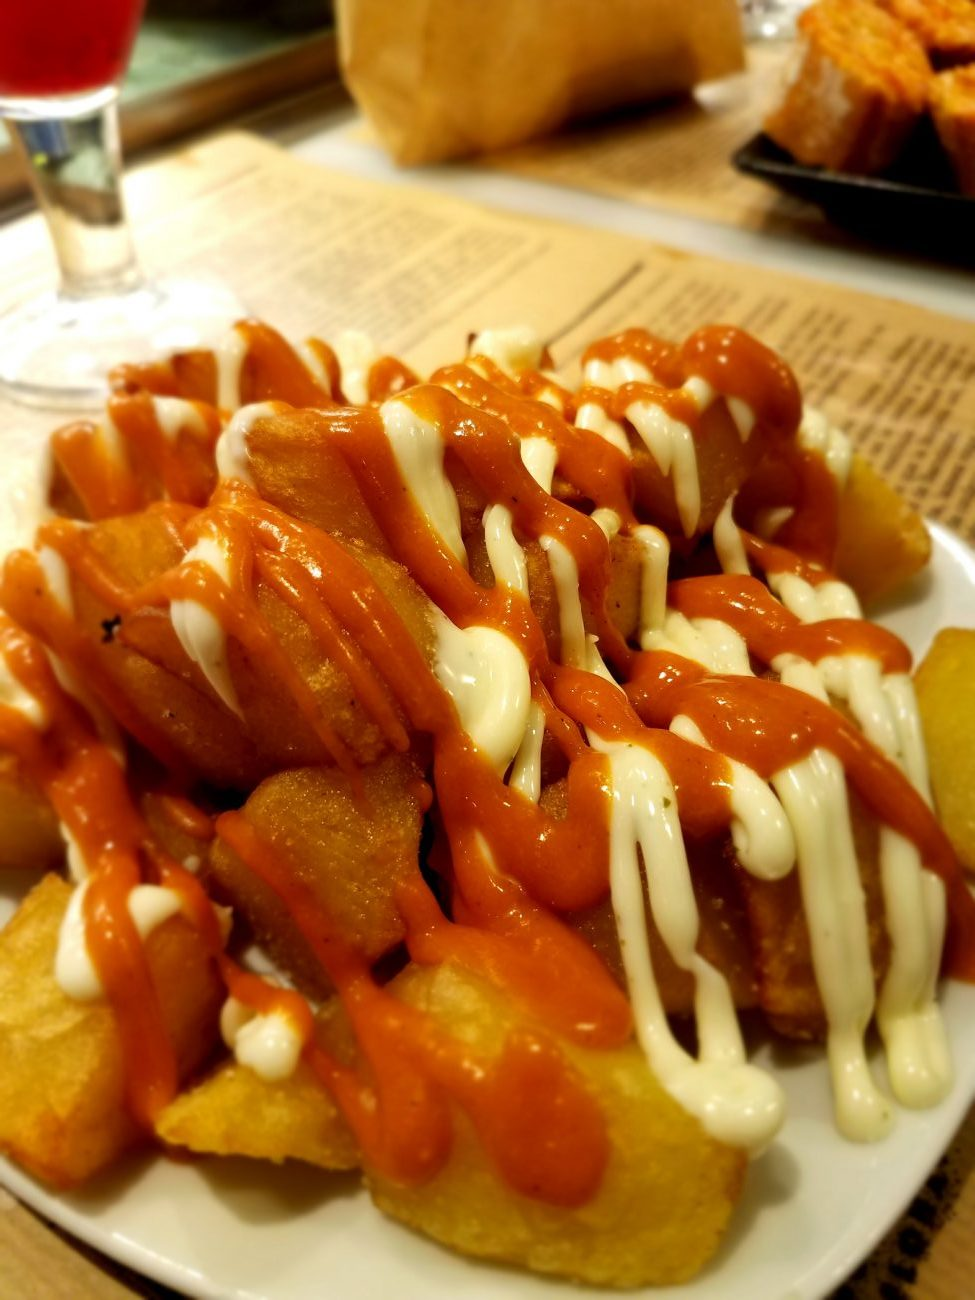 Papes Bravas in Spain